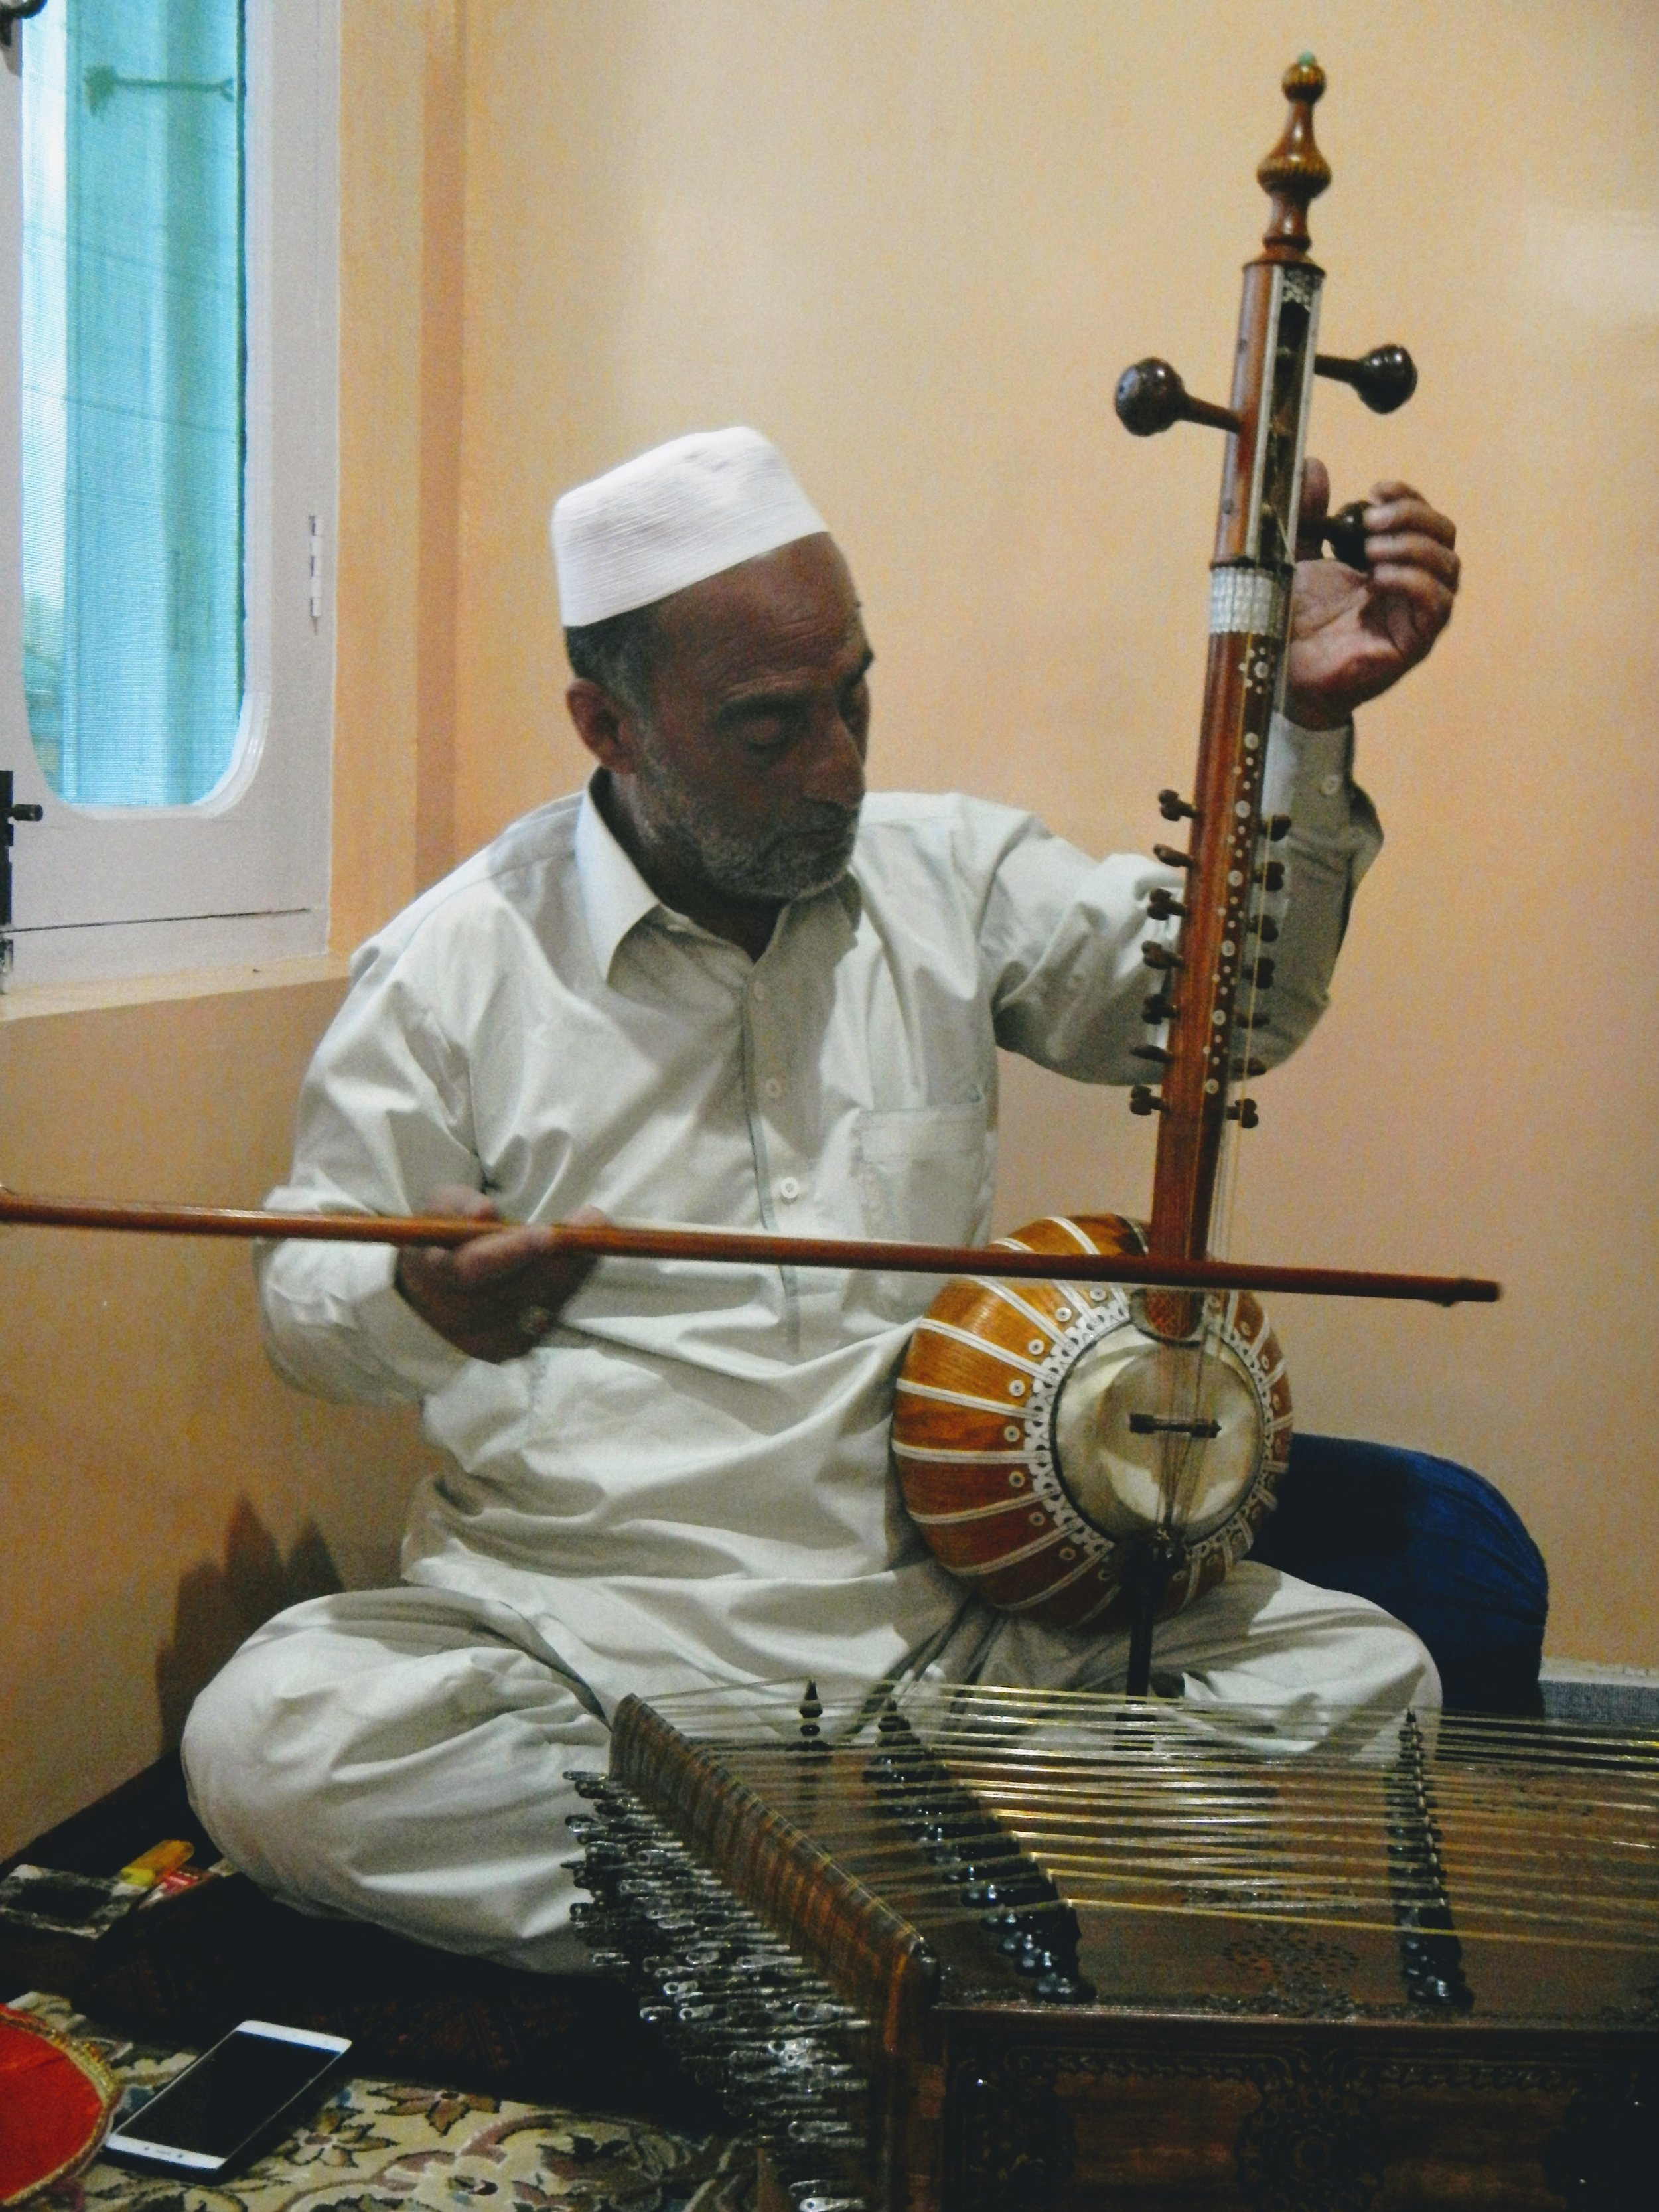 Kashmiri classical music maestro Ustad Mohammad Yaqoob Sheikh before playing a composition by Jalaluddin Rumi in Srinagar, India. The santoor sits on the floor in the foreground, and Sheikh plays a Saz-e-Kashmir, a sort of pot-belly violin created in the region and distinctive to Kashmiri music. Photo by Priyadarshini Sen.